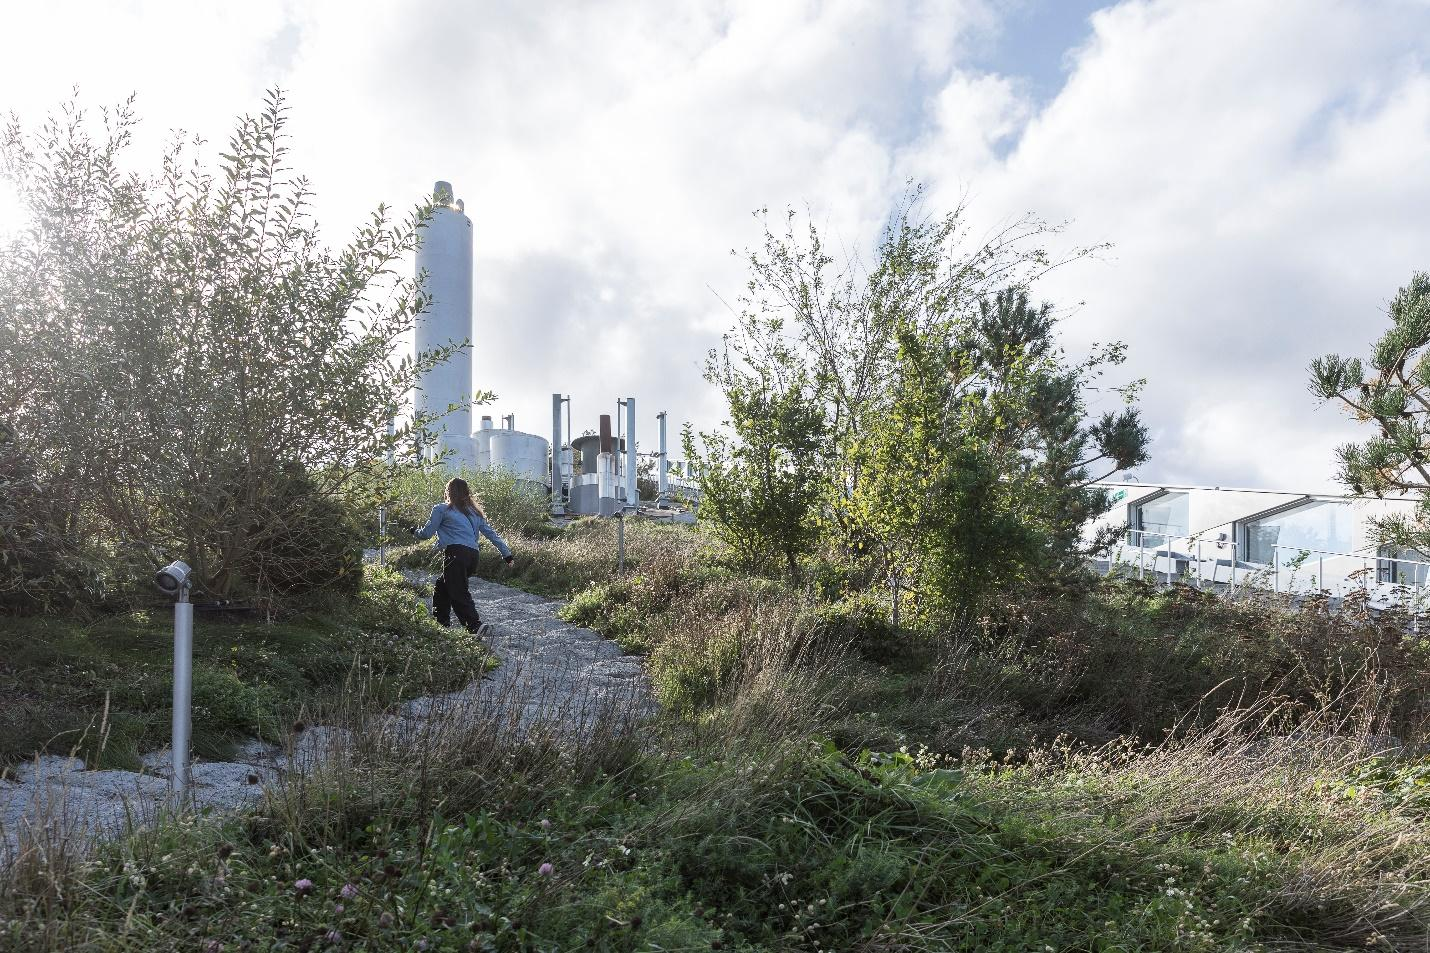 CopenHill's hiking trail is home to thousands of bushes, hundreds of trees and various plants and other greenery